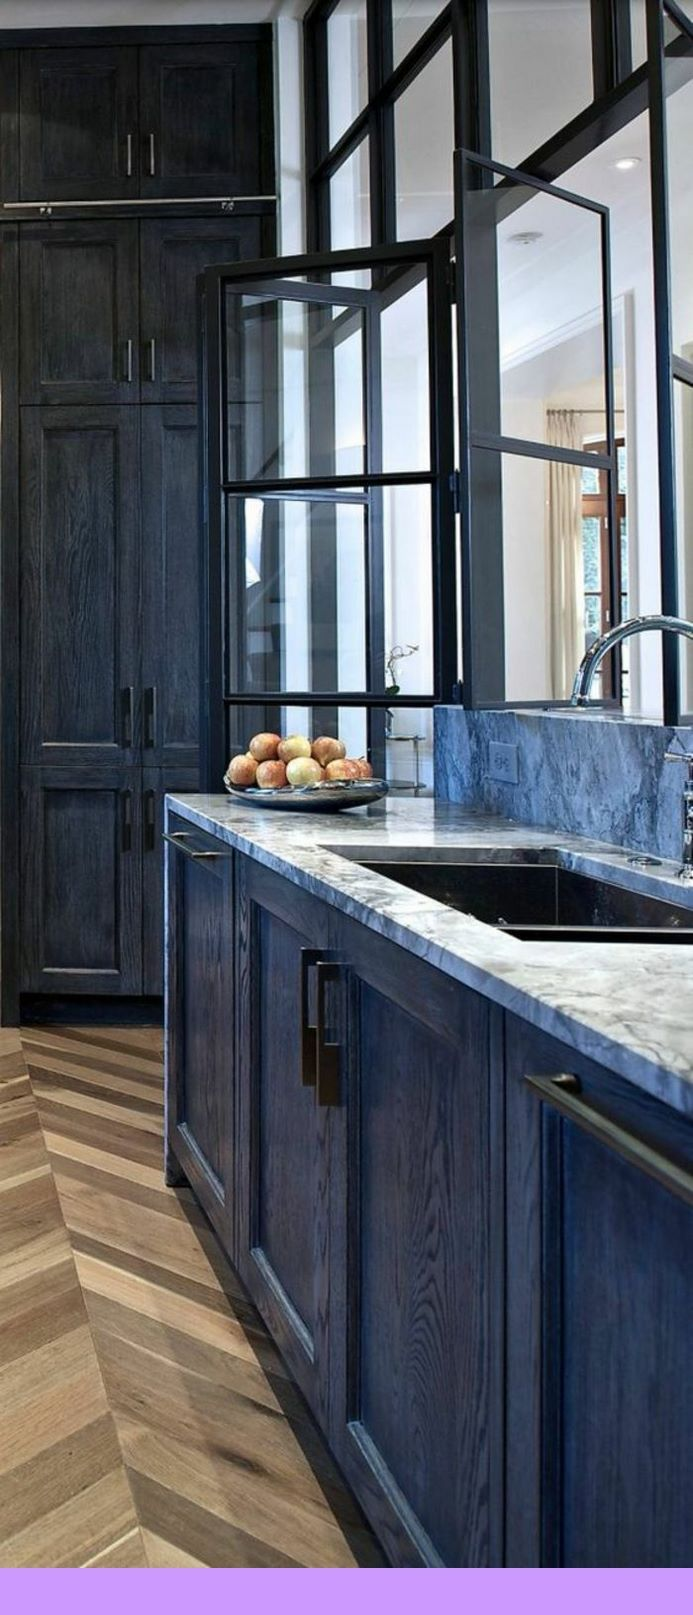 Dark Light Oak Maple Cherry Cabinetry And Dark Wood Kitchen Cabinets With Granite Countertops Check The Imag Kitchen Trends Kitchen Design Kitchen Colors